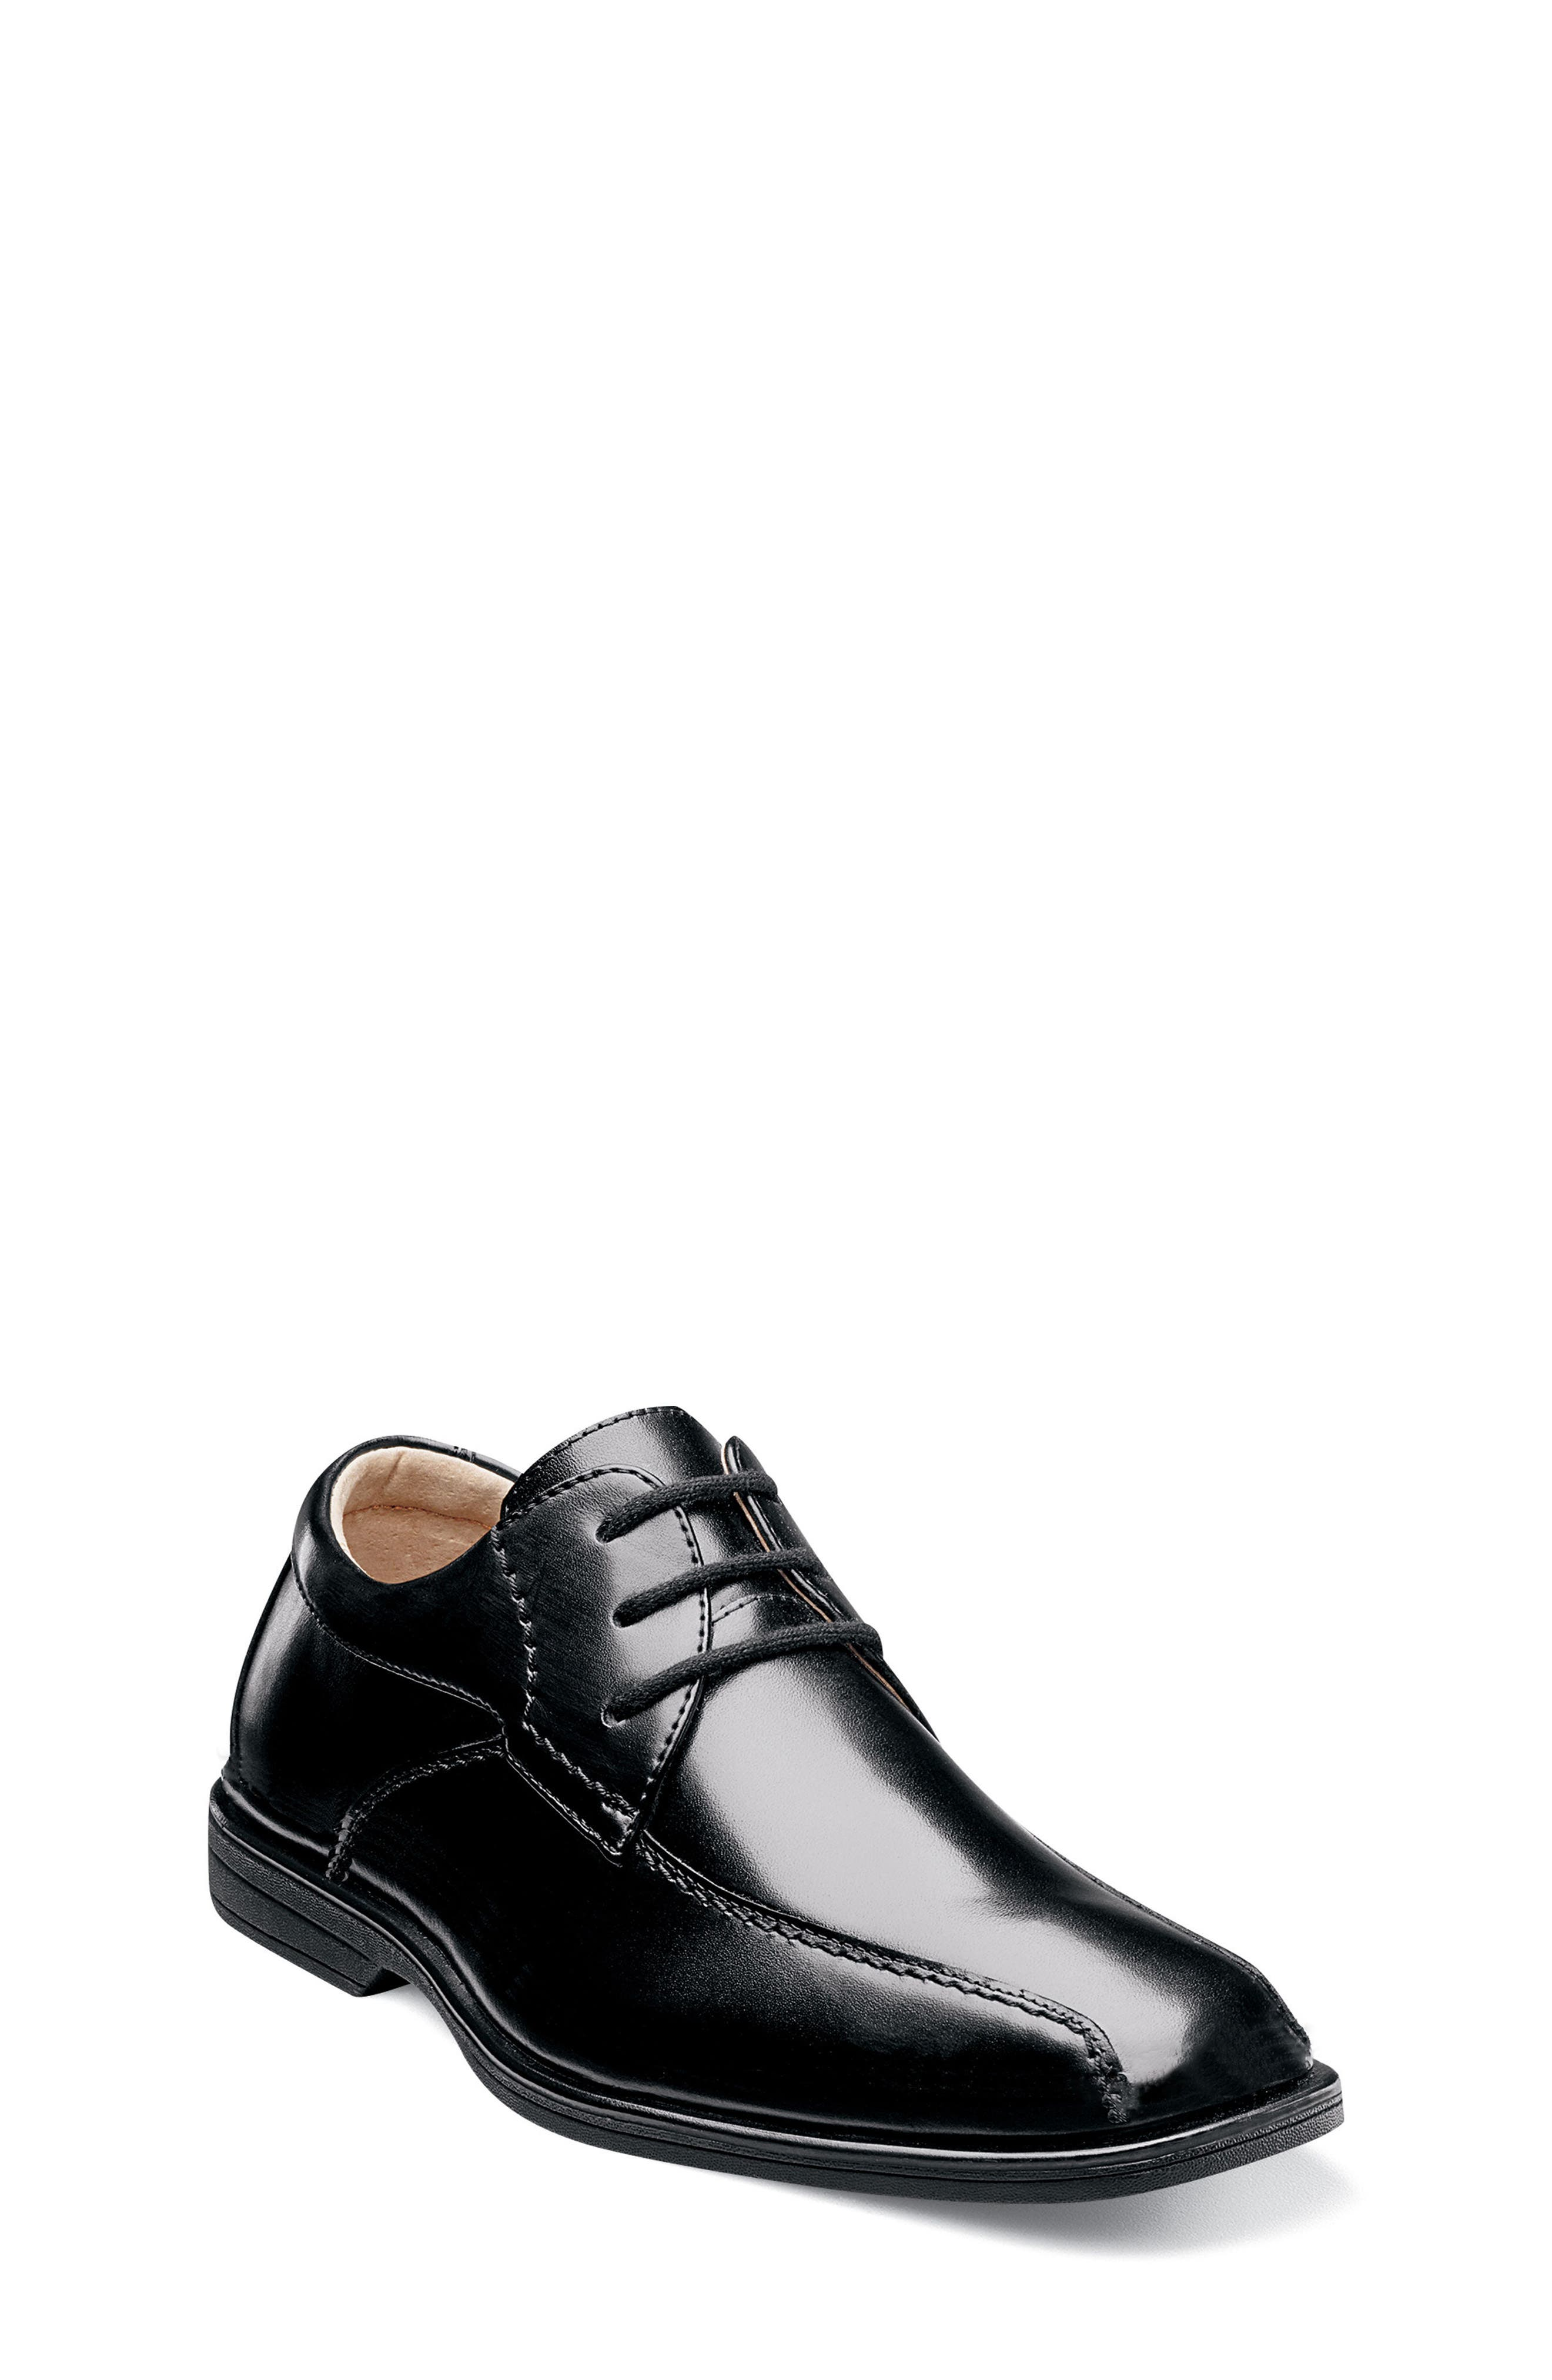 FLORSHEIM, 'Reveal' Oxford, Main thumbnail 1, color, BLACK